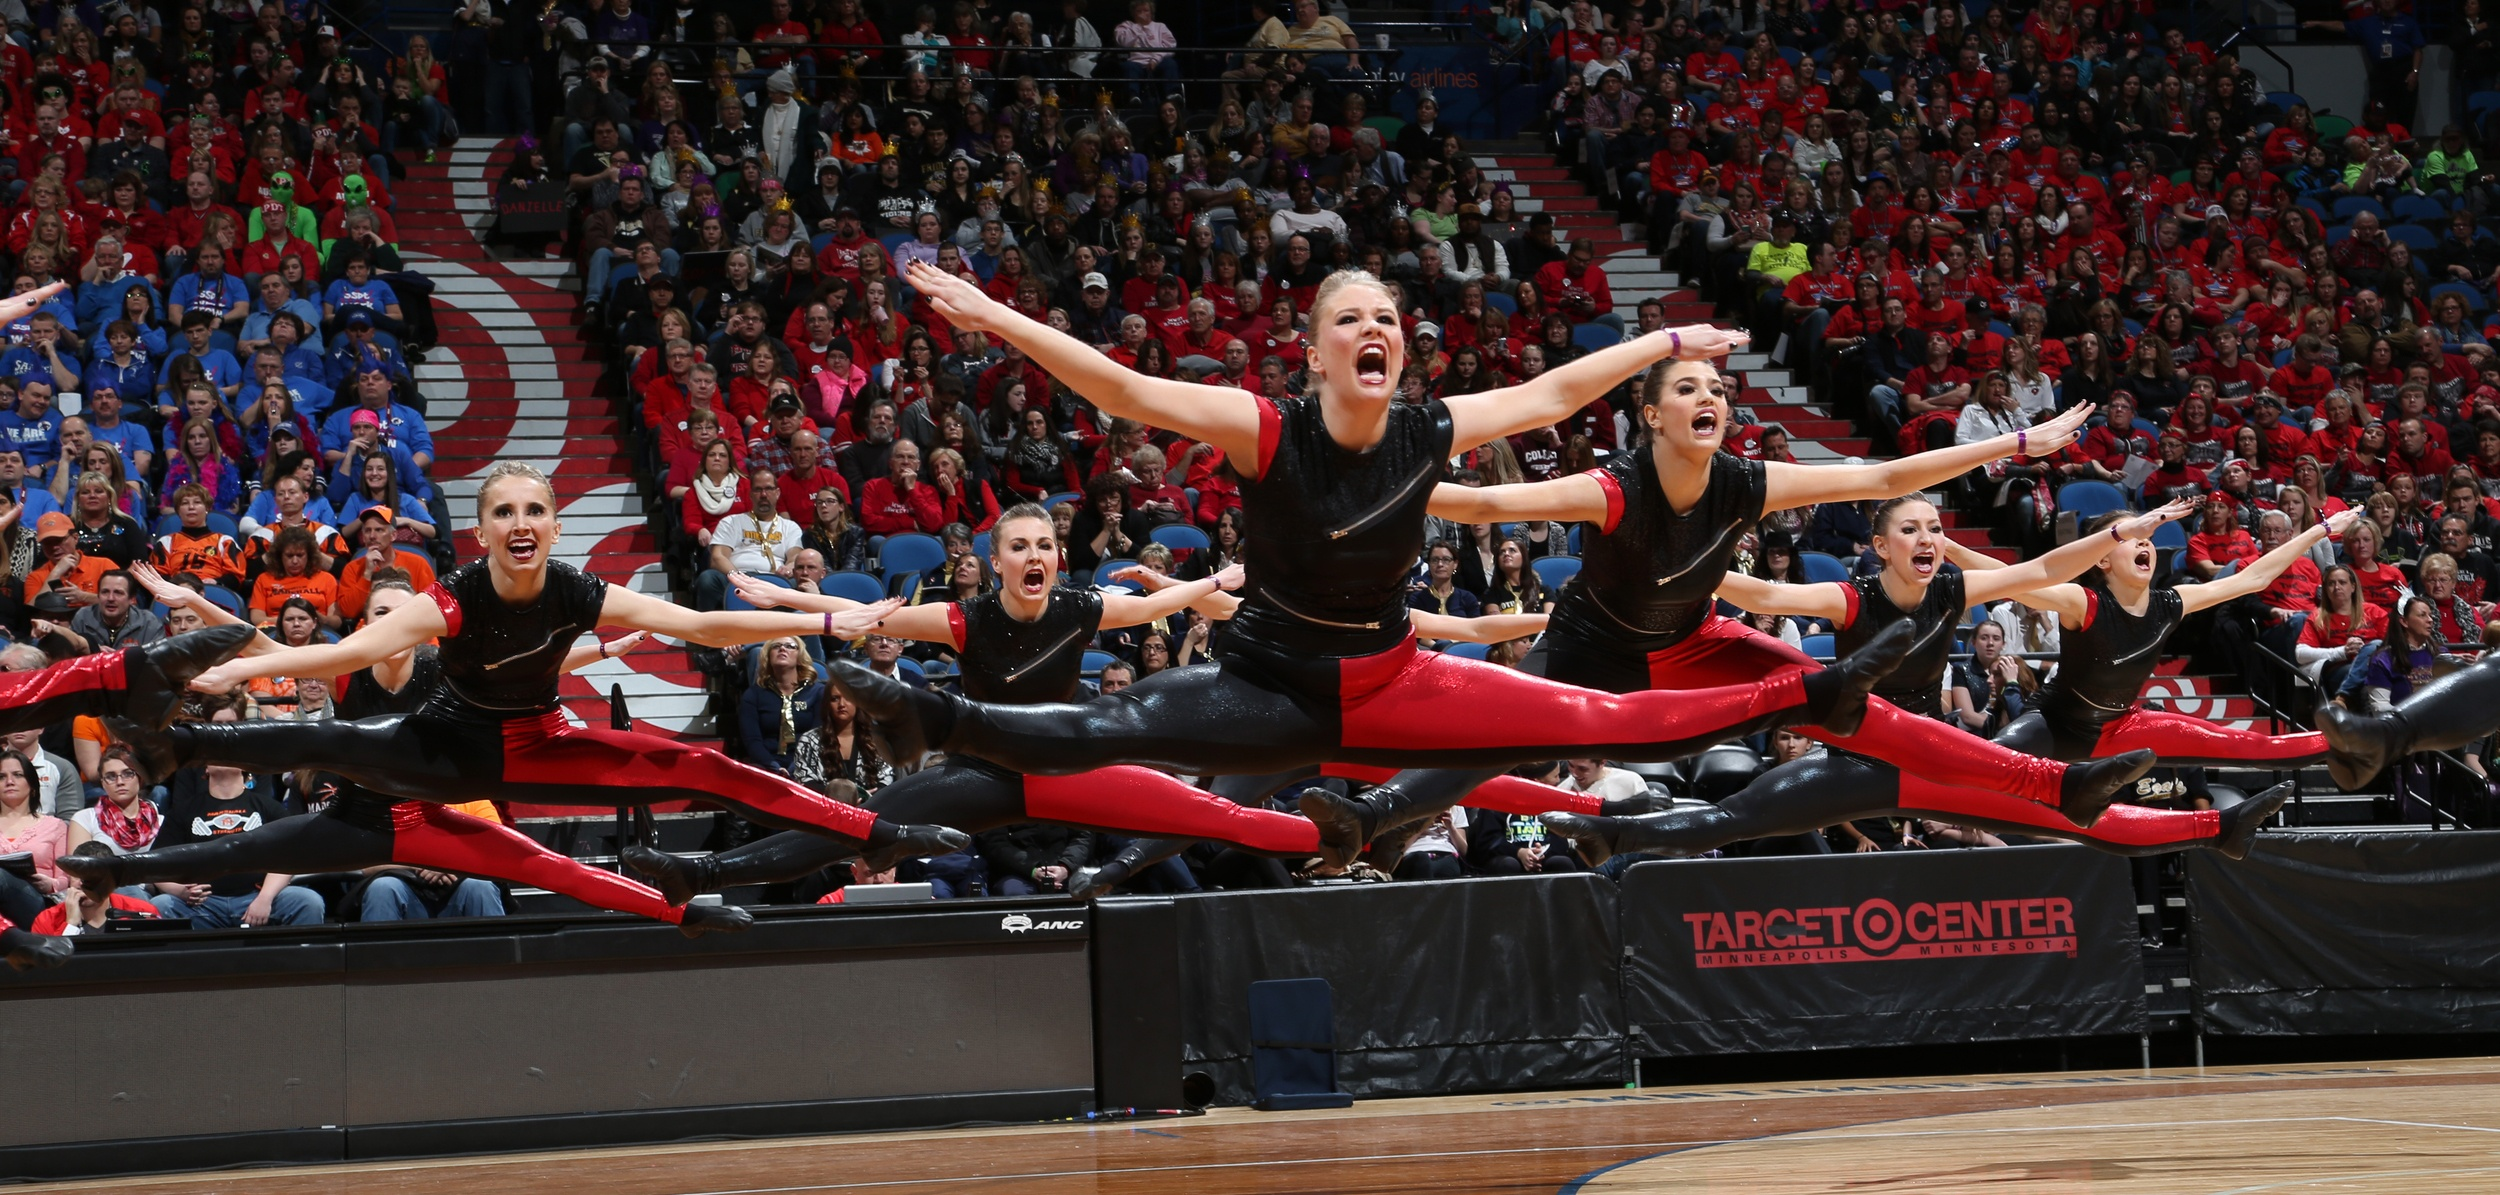 Eden prairie dance team in color change unitard